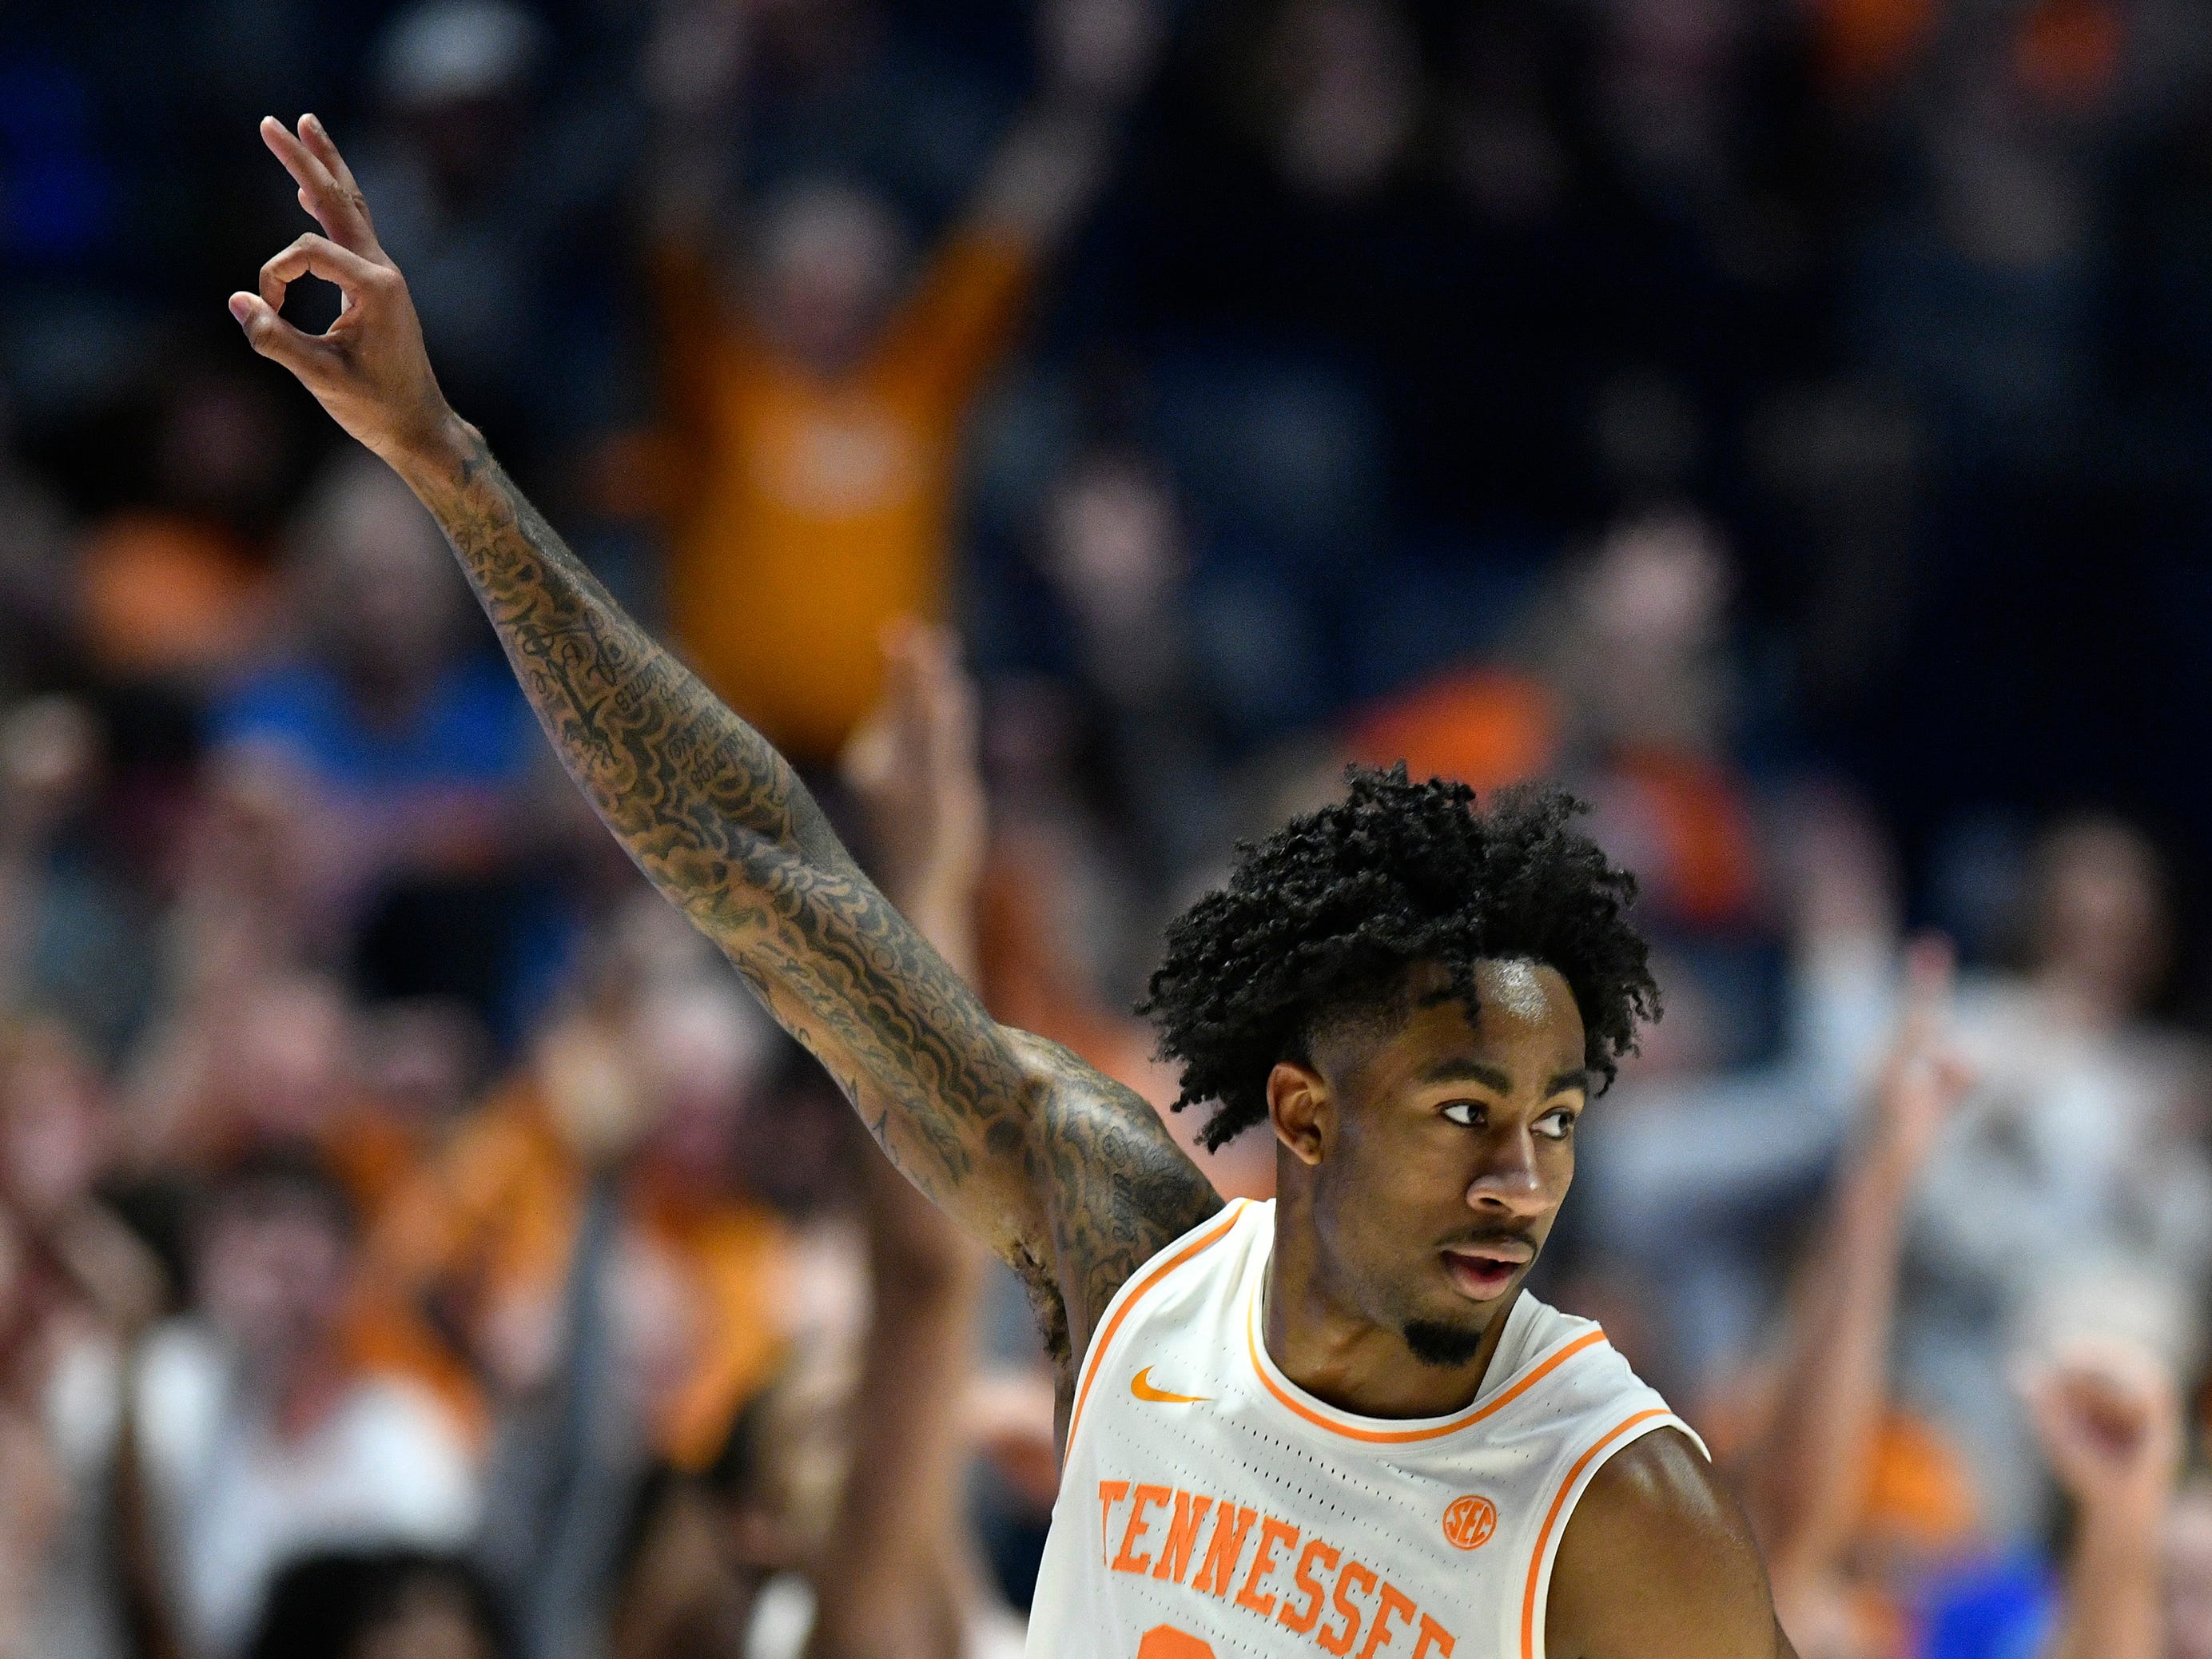 Tennessee guard Jordan Bowden (23) celebrates his three-pointer during the second half of the SEC Men's Basketball Tournament game against Mississippi State at Bridgestone Arena in Nashville, Tenn., Friday, March 15, 2019.